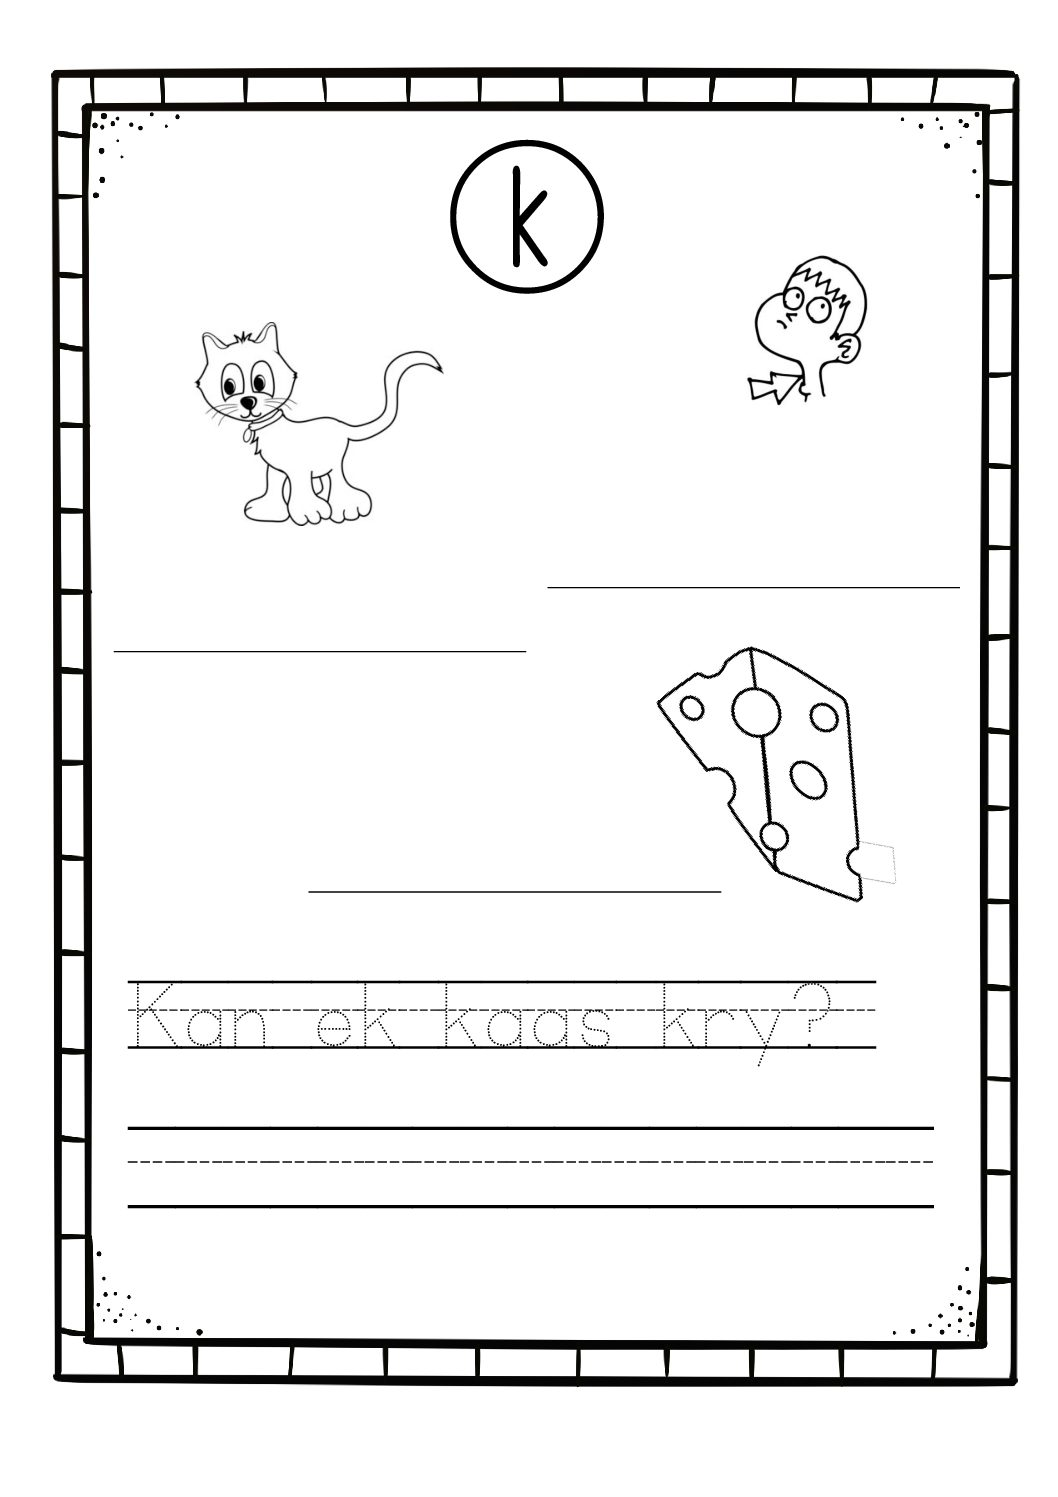 Worksheet For Grade 3 Afrikaans